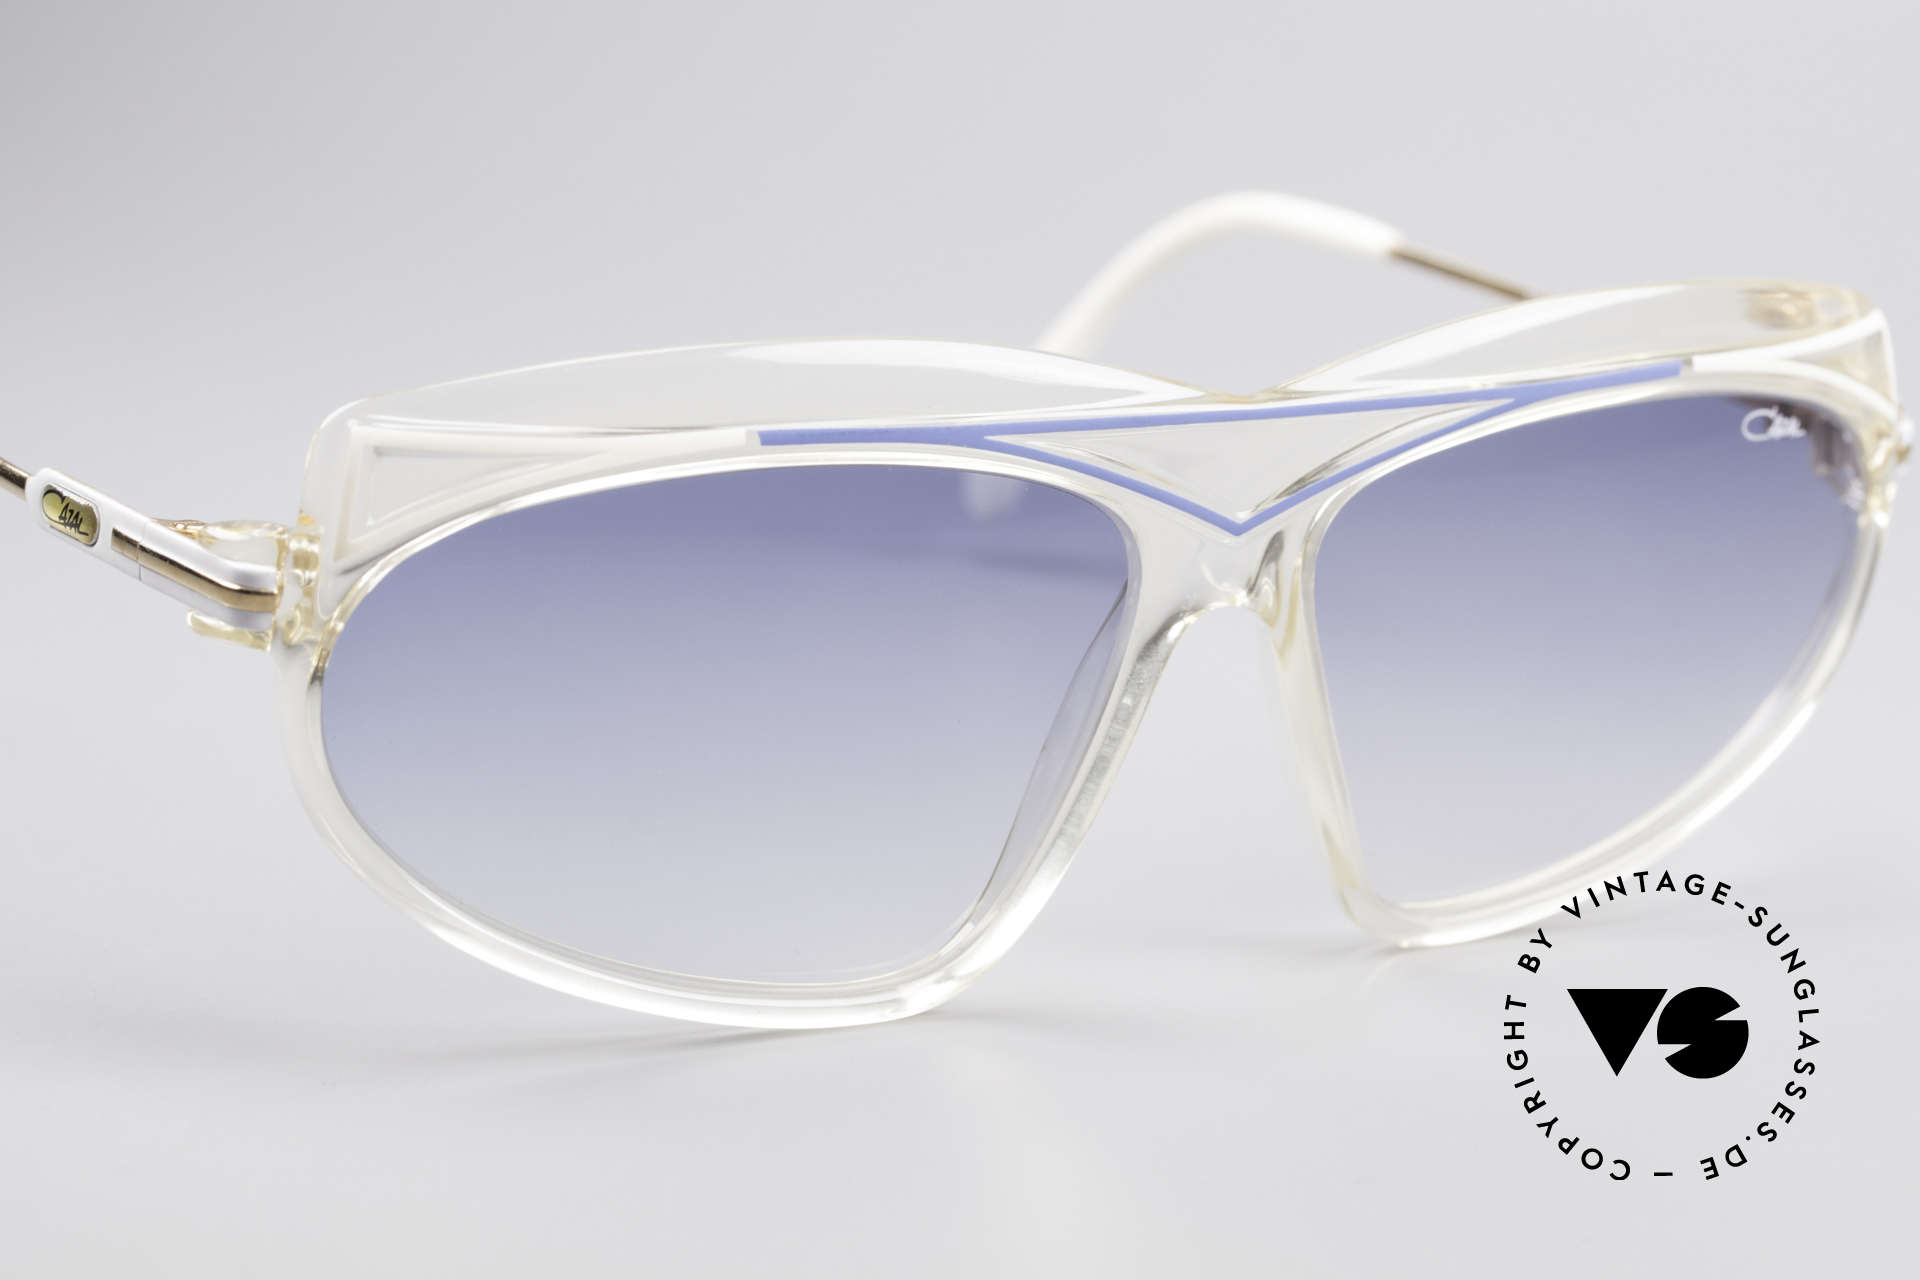 Cazal 854 True Vintage XL HipHop Shades, unworn and with original Cazal case (collector's item), Made for Women